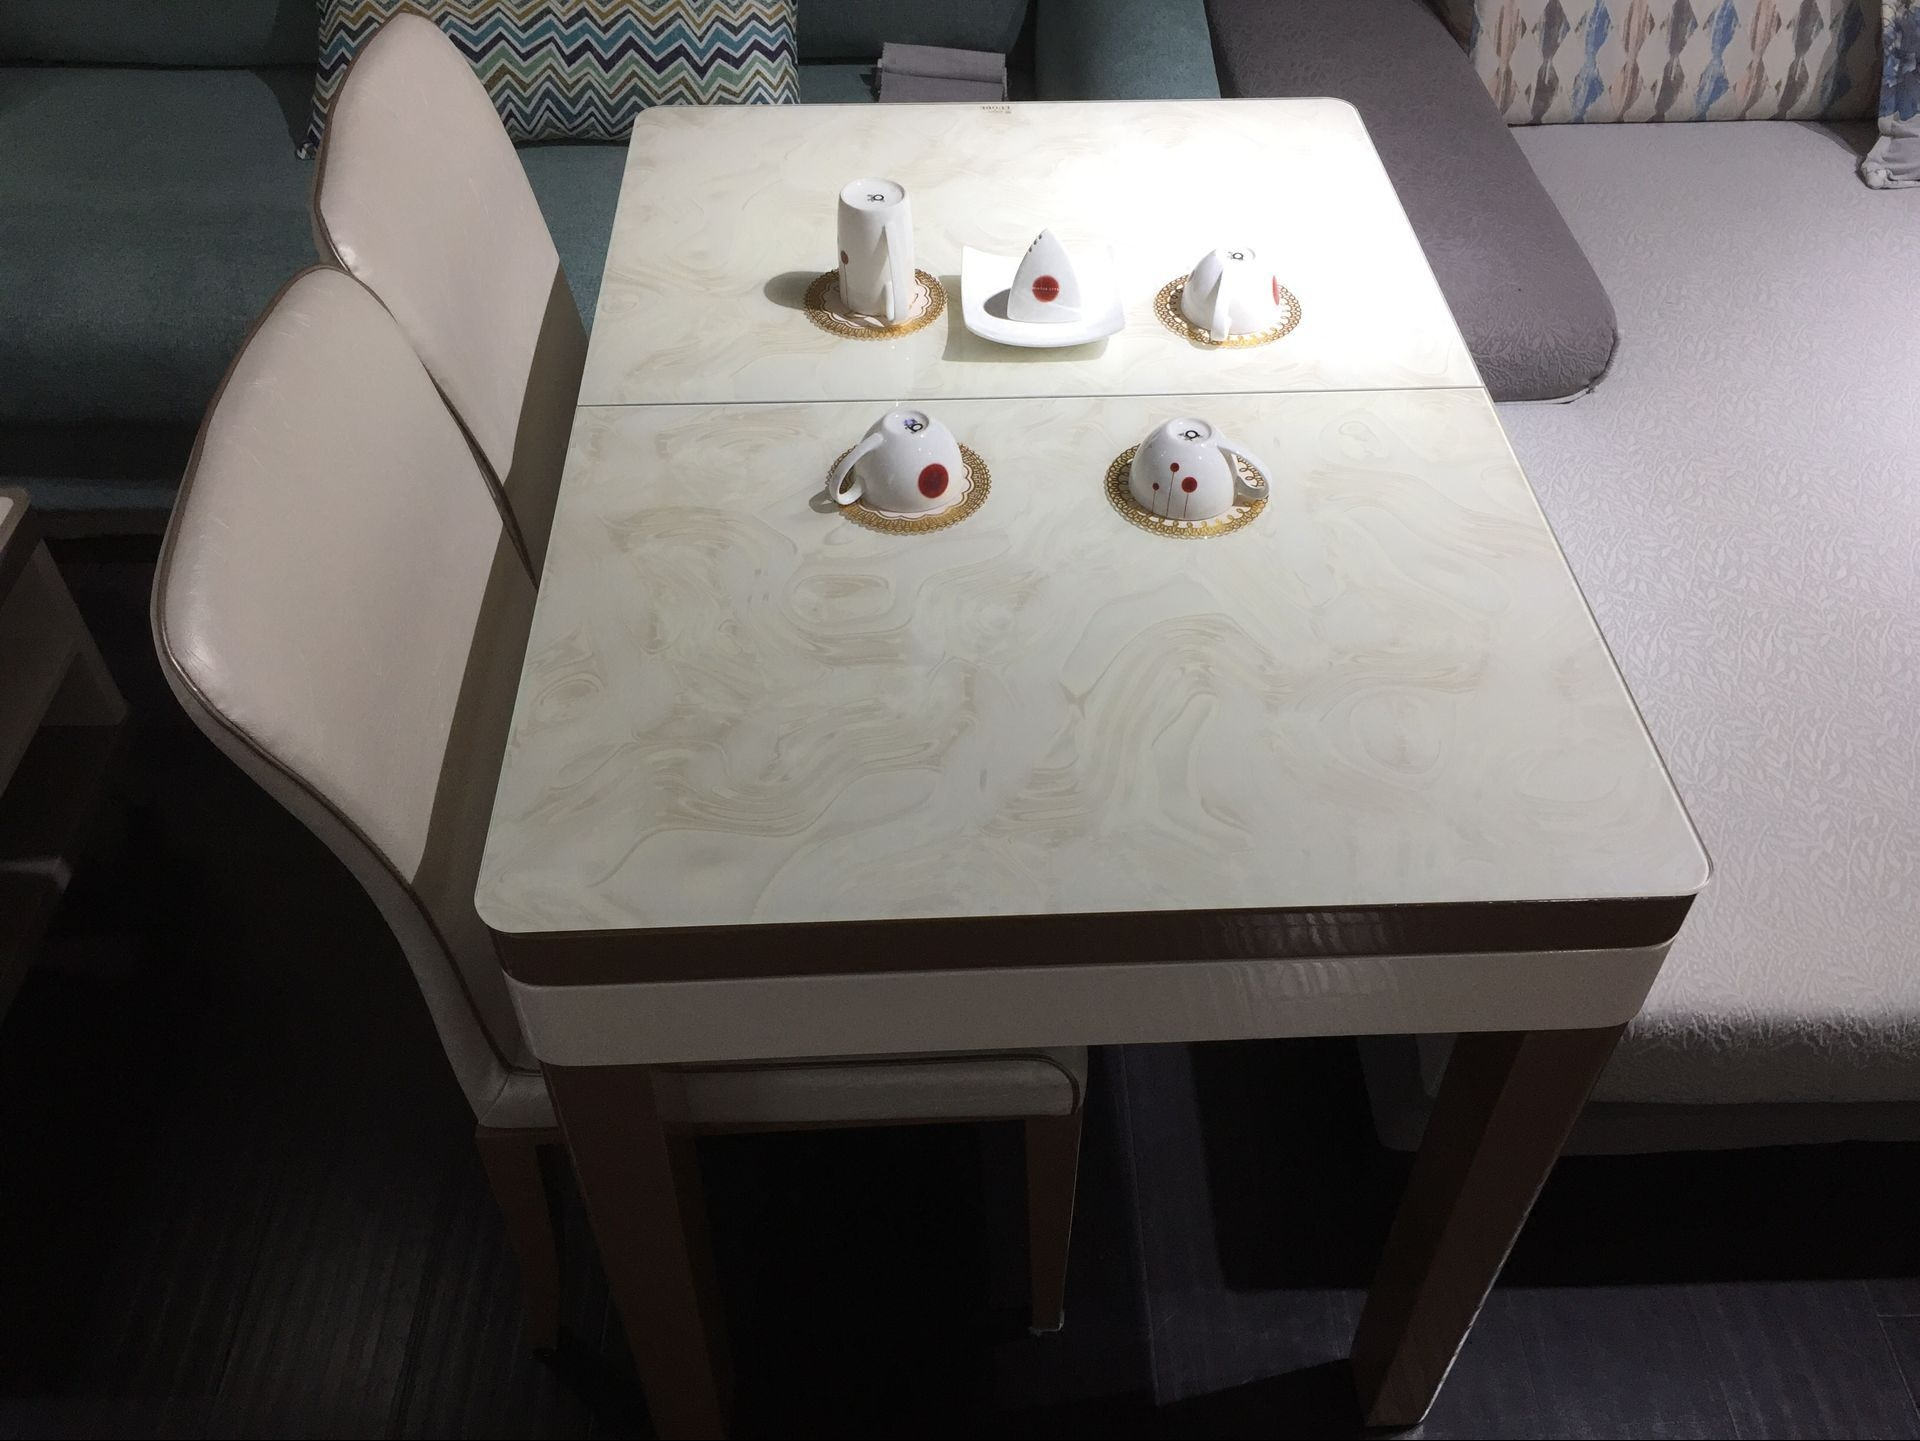 1 m stretching and shrinking dining table, 1 m long, 70 cm wide, strengthened and toughened glass, golden solid wood leg, small house type